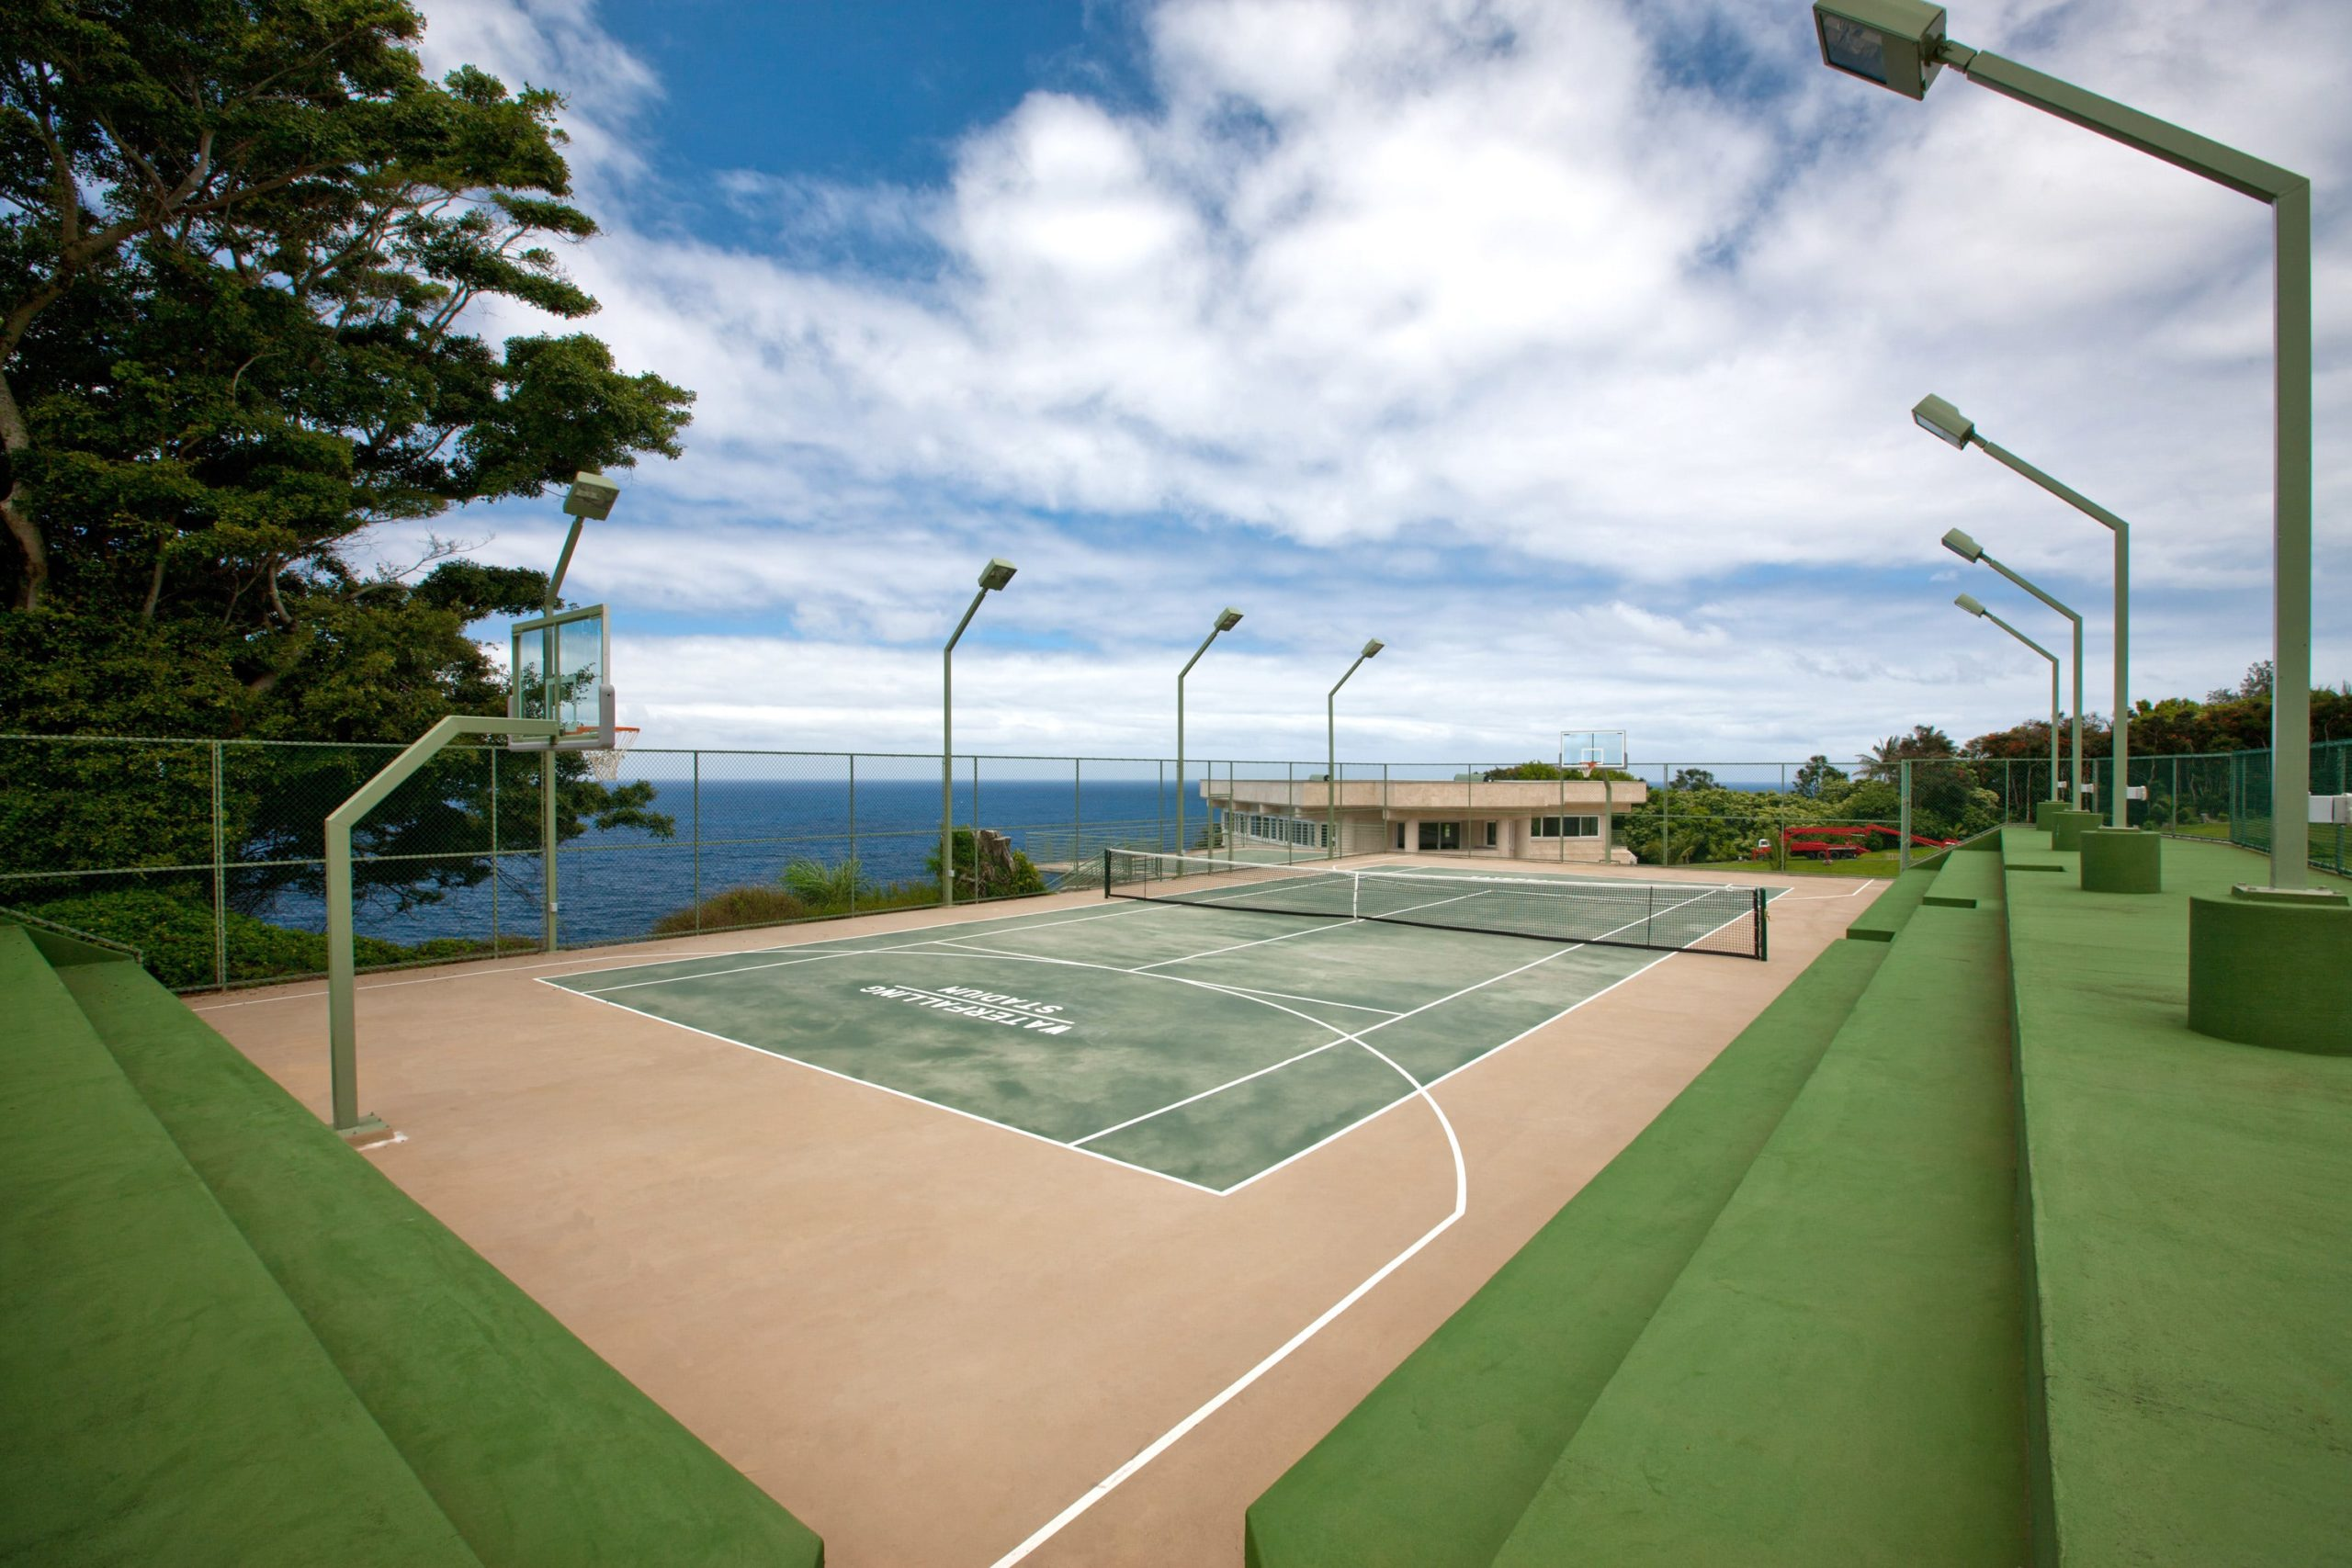 View of the tennis court. Image courtesy of Toptenrealestatedeals.com.